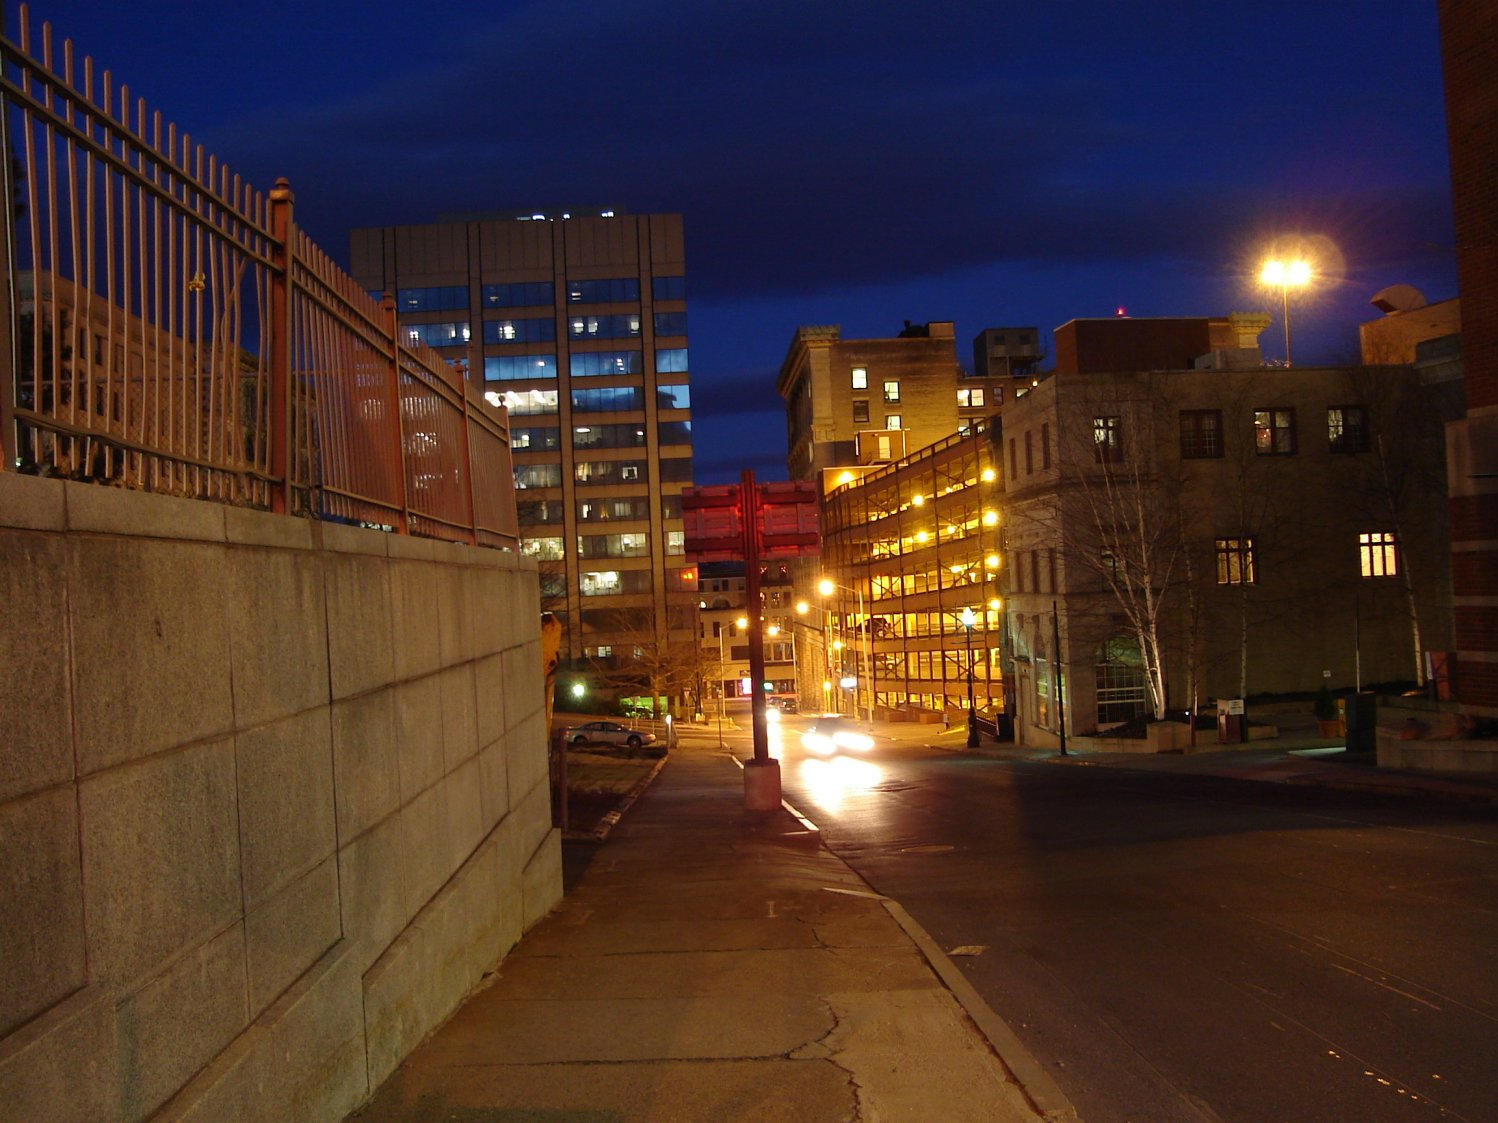 Urban Colours by Lunarsight